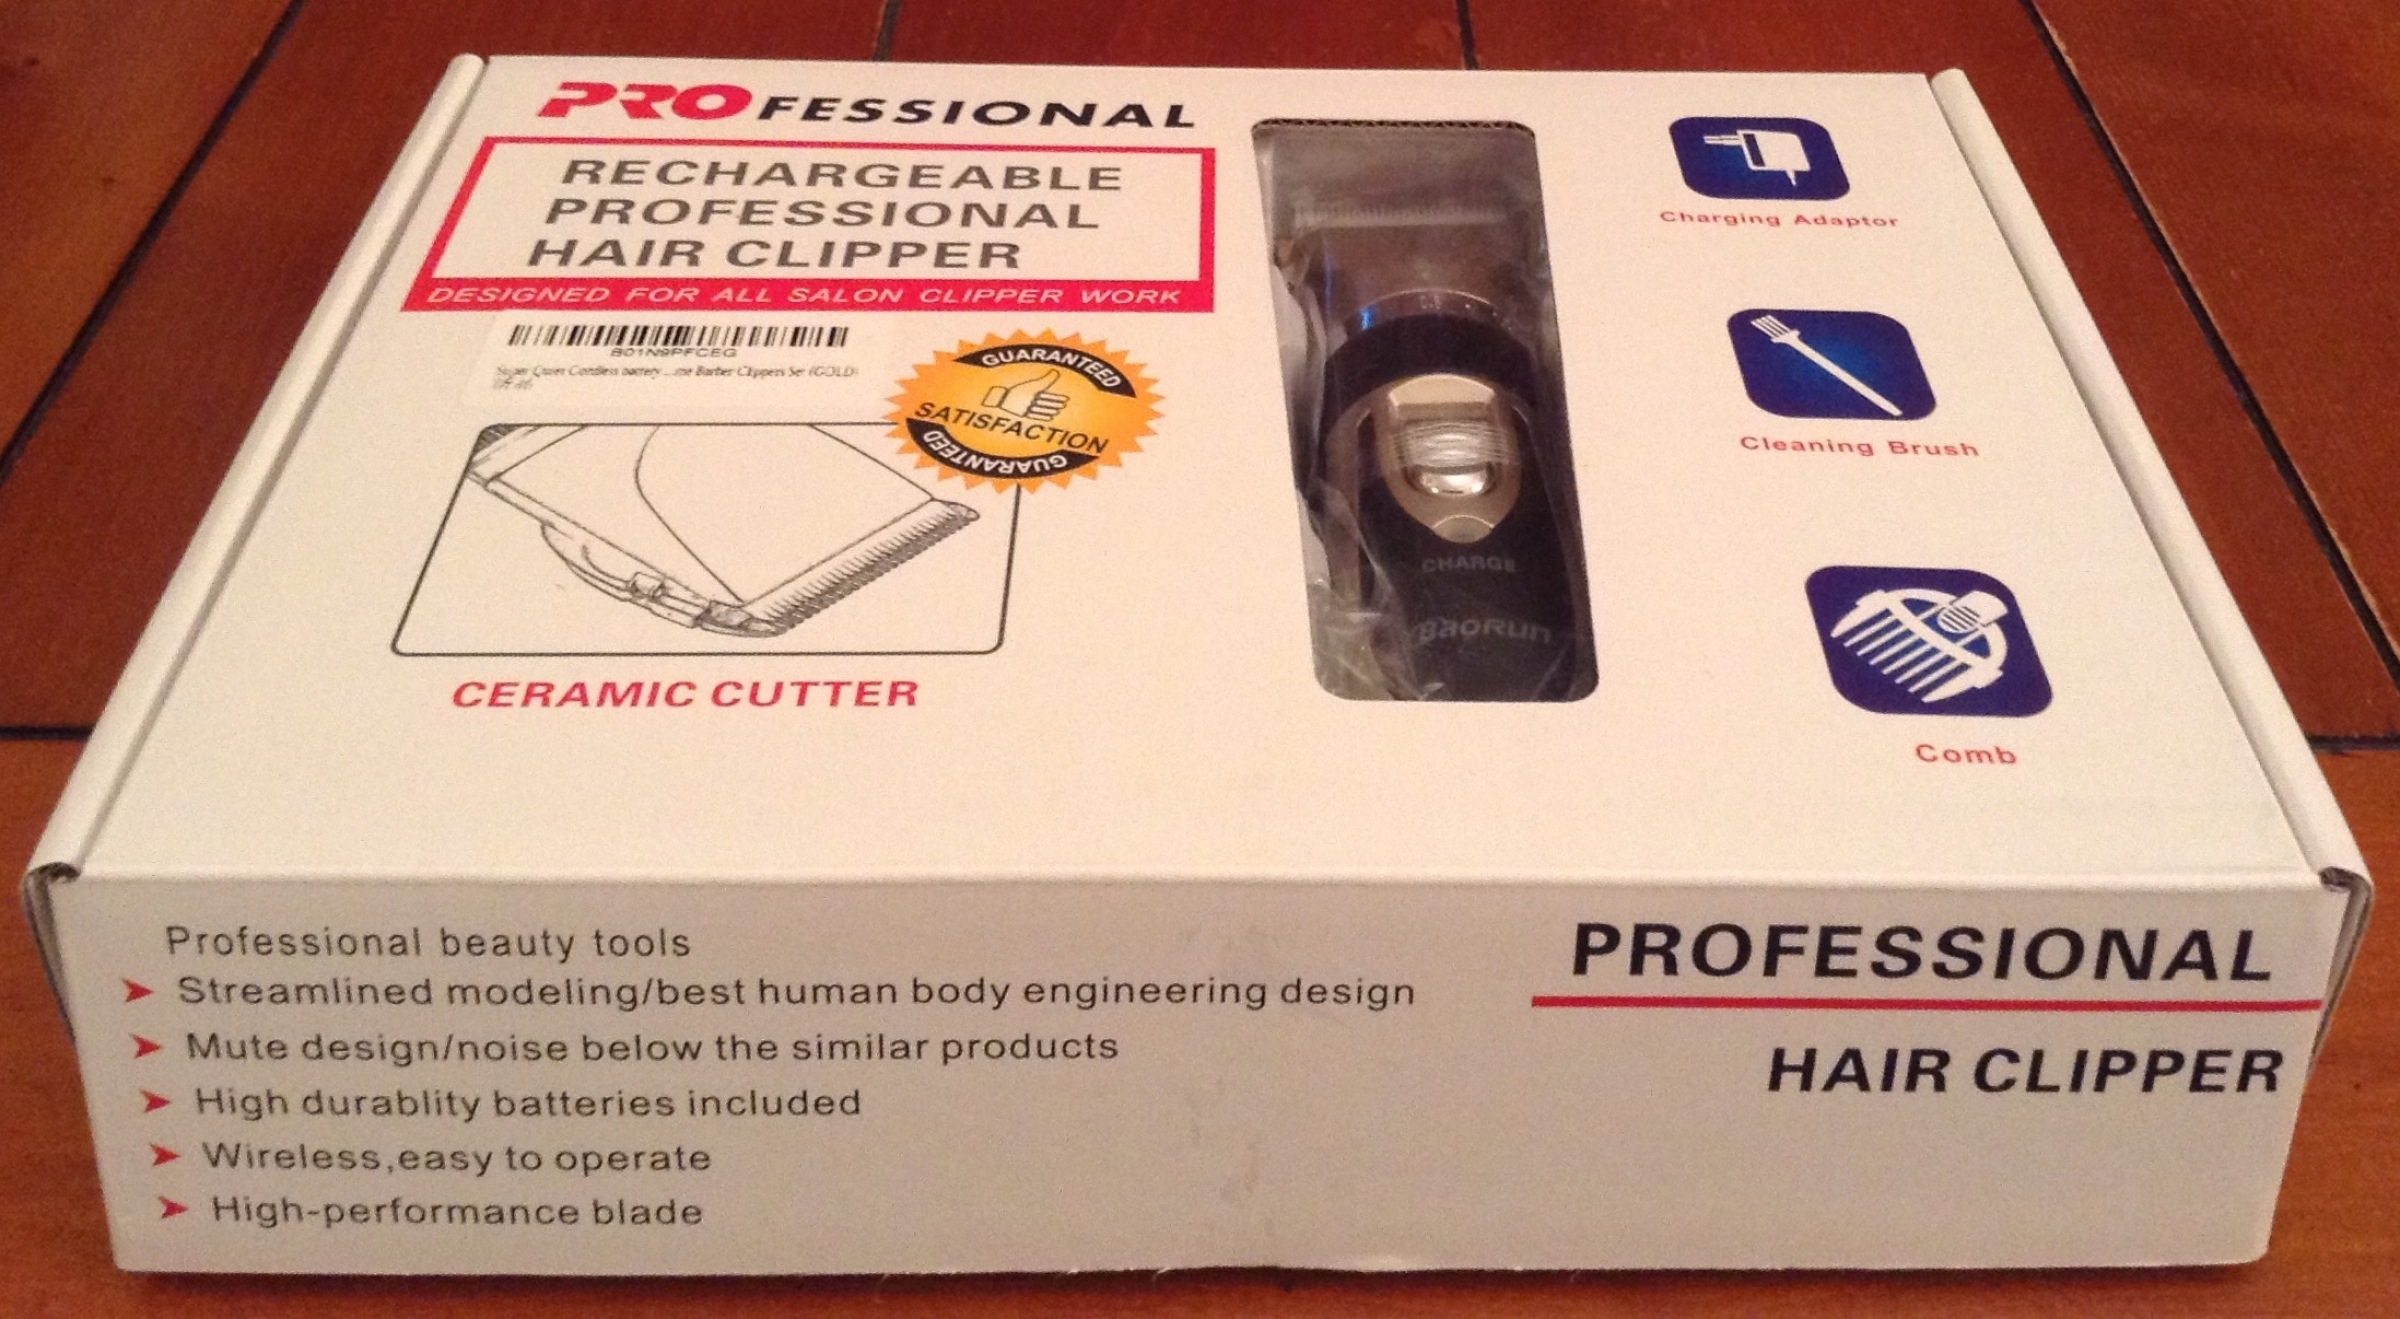 A powerful and functional electric hair trimmer